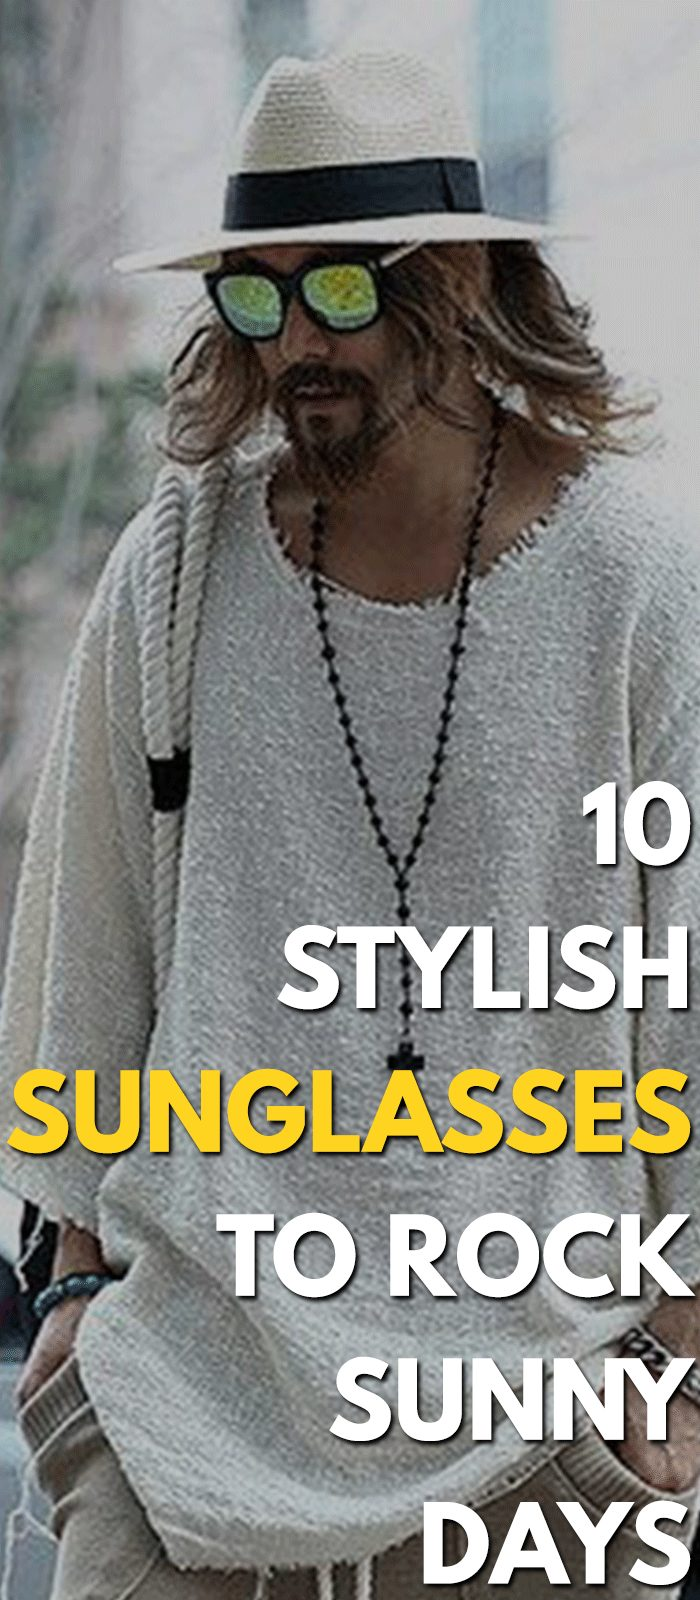 10 Stylish Sunglasses To Rock Sunny Day